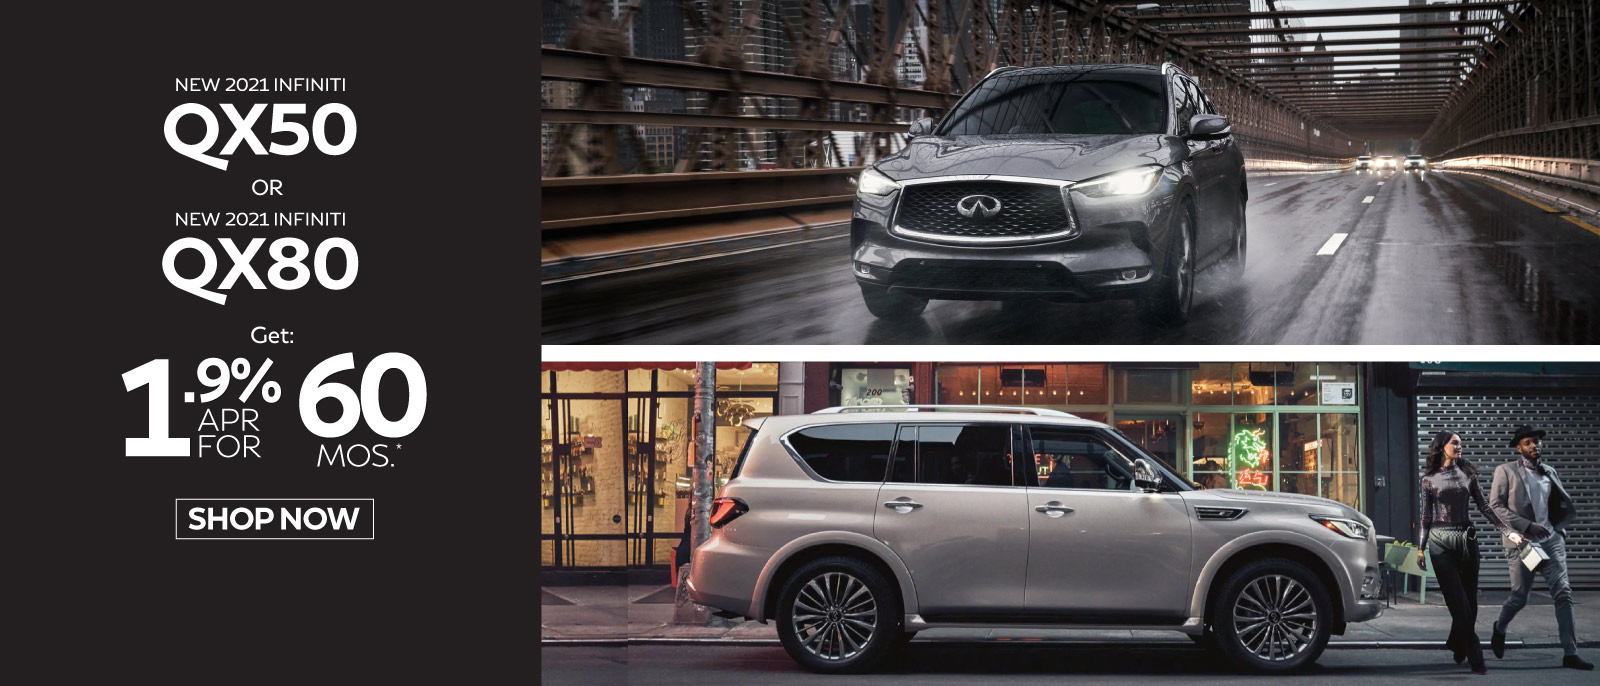 New 2021 INFINITI QX50 Pure AWD Lease for only $389 a mo. for 39 mos.* $3799 due at signing. Click here to begin shopping.